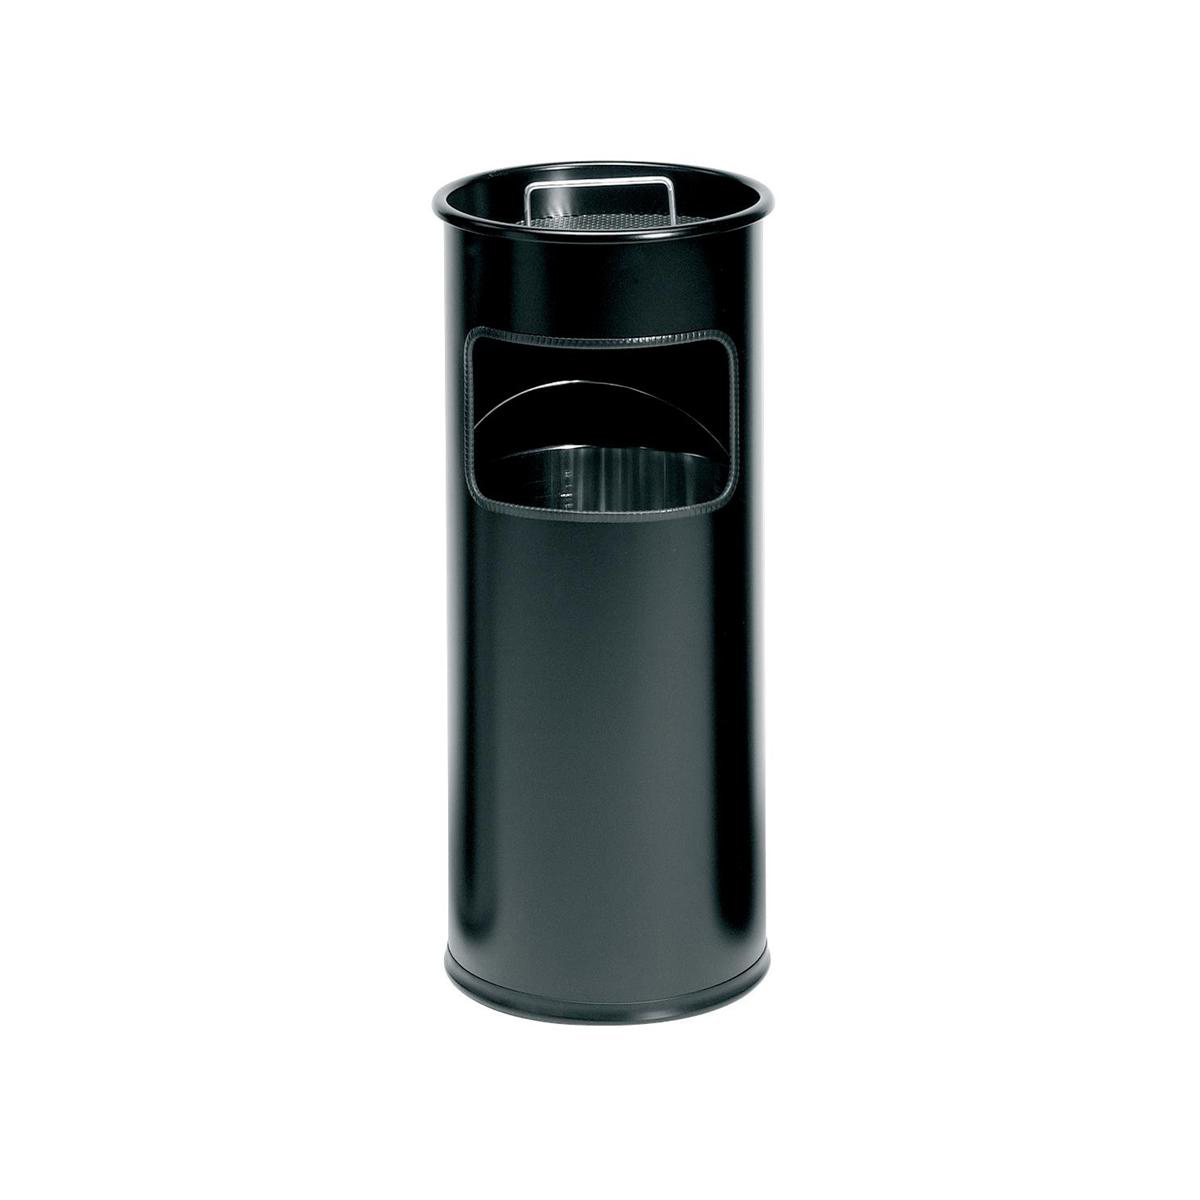 Ash Bins Durable Ashtray Waste Bin with 1.5 Kilos of Silver Sand 17 Litres with 2 Litre Ashtray Black Ref 3330/01